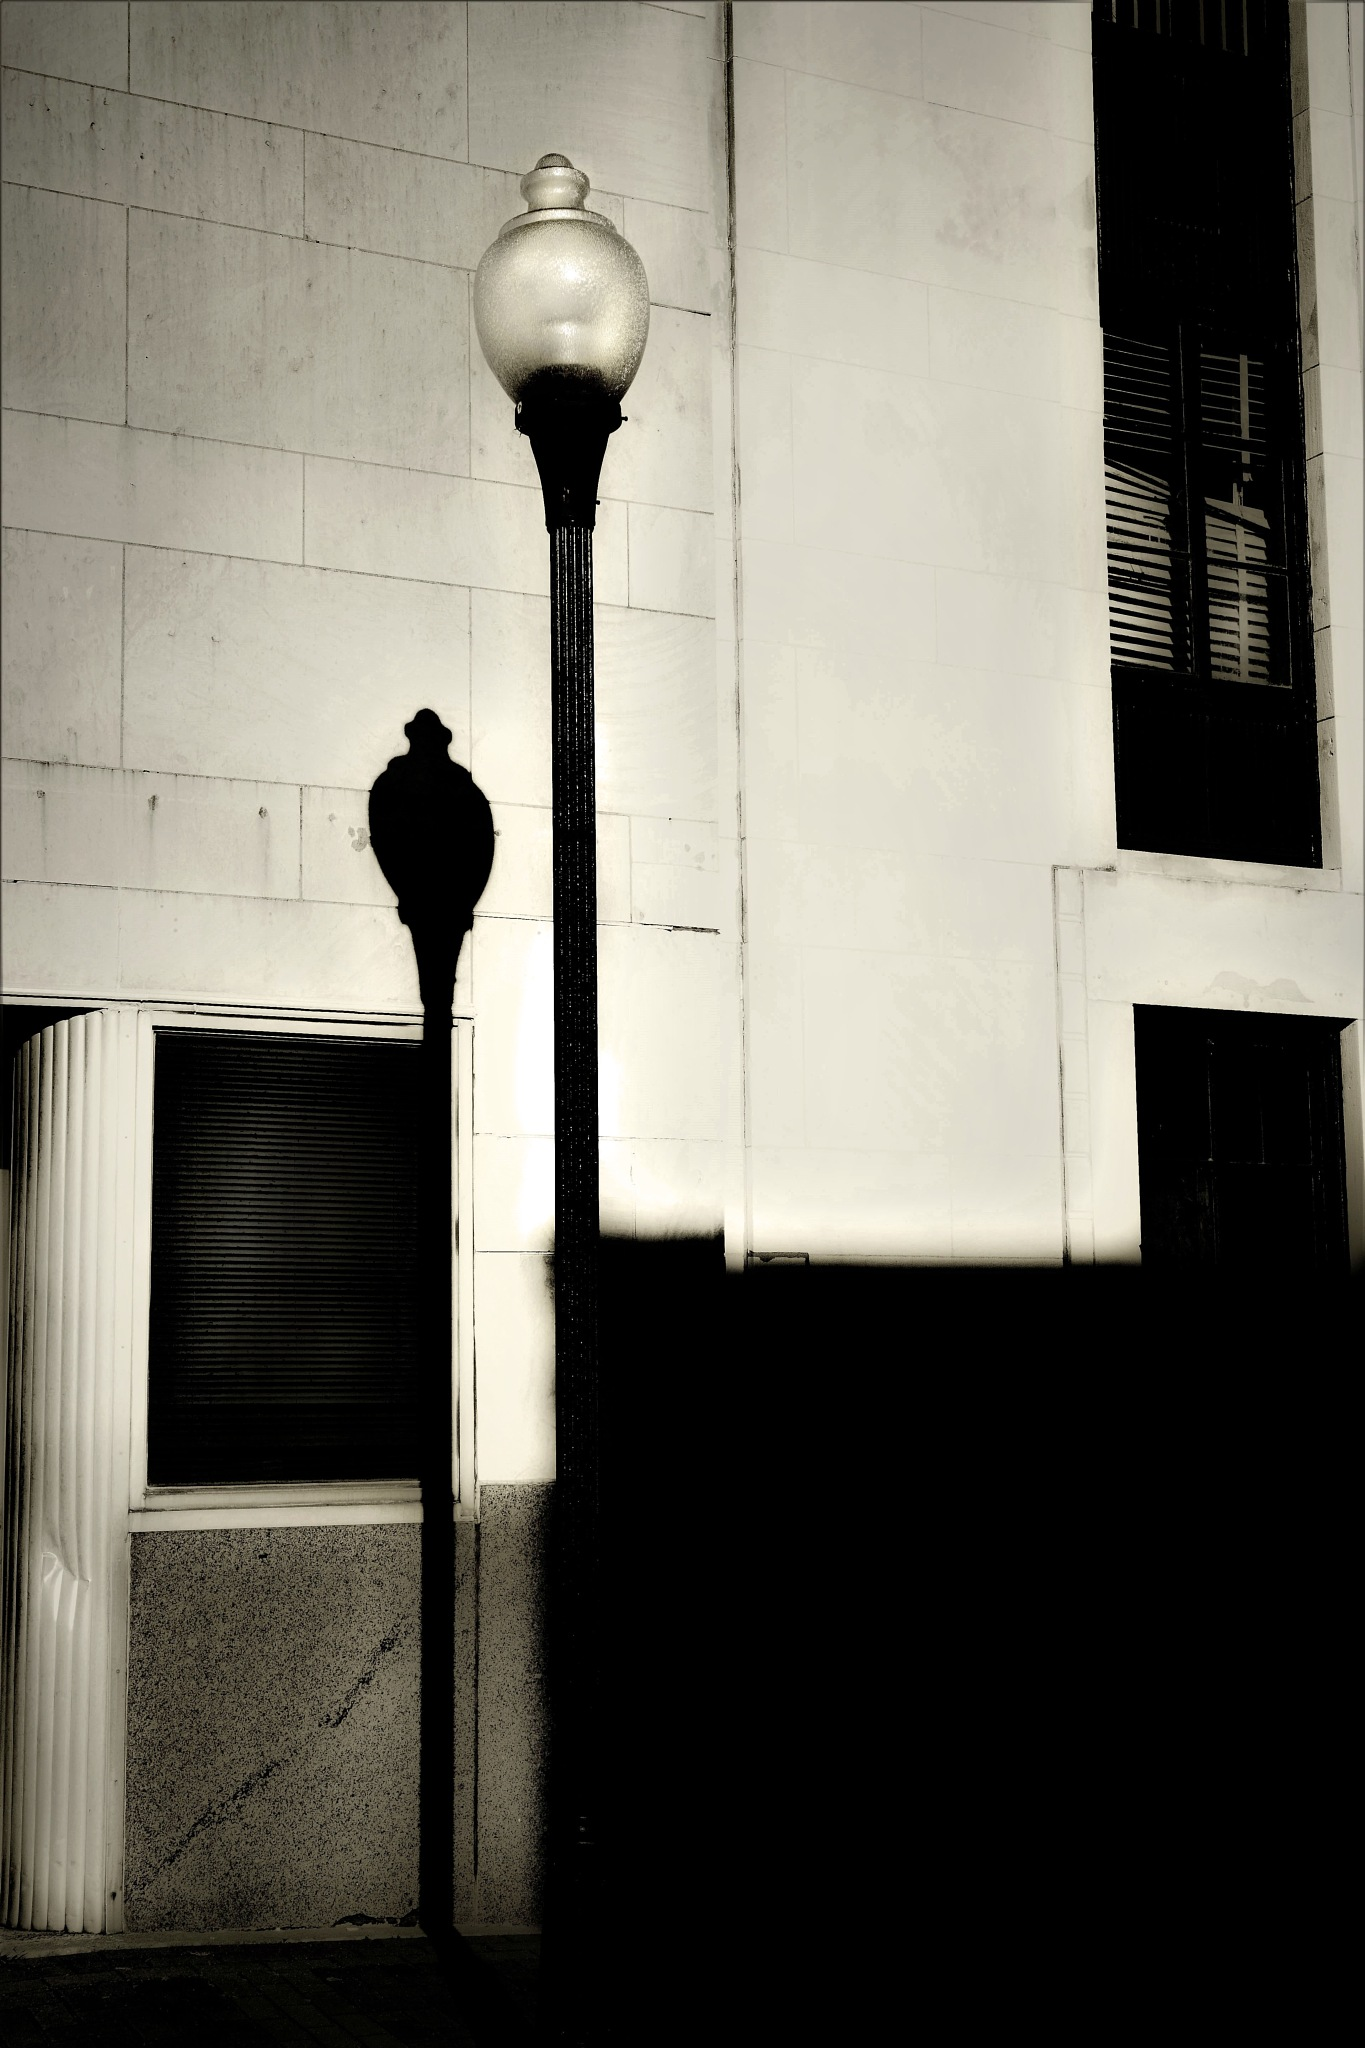 lamp post by Jim Oakes